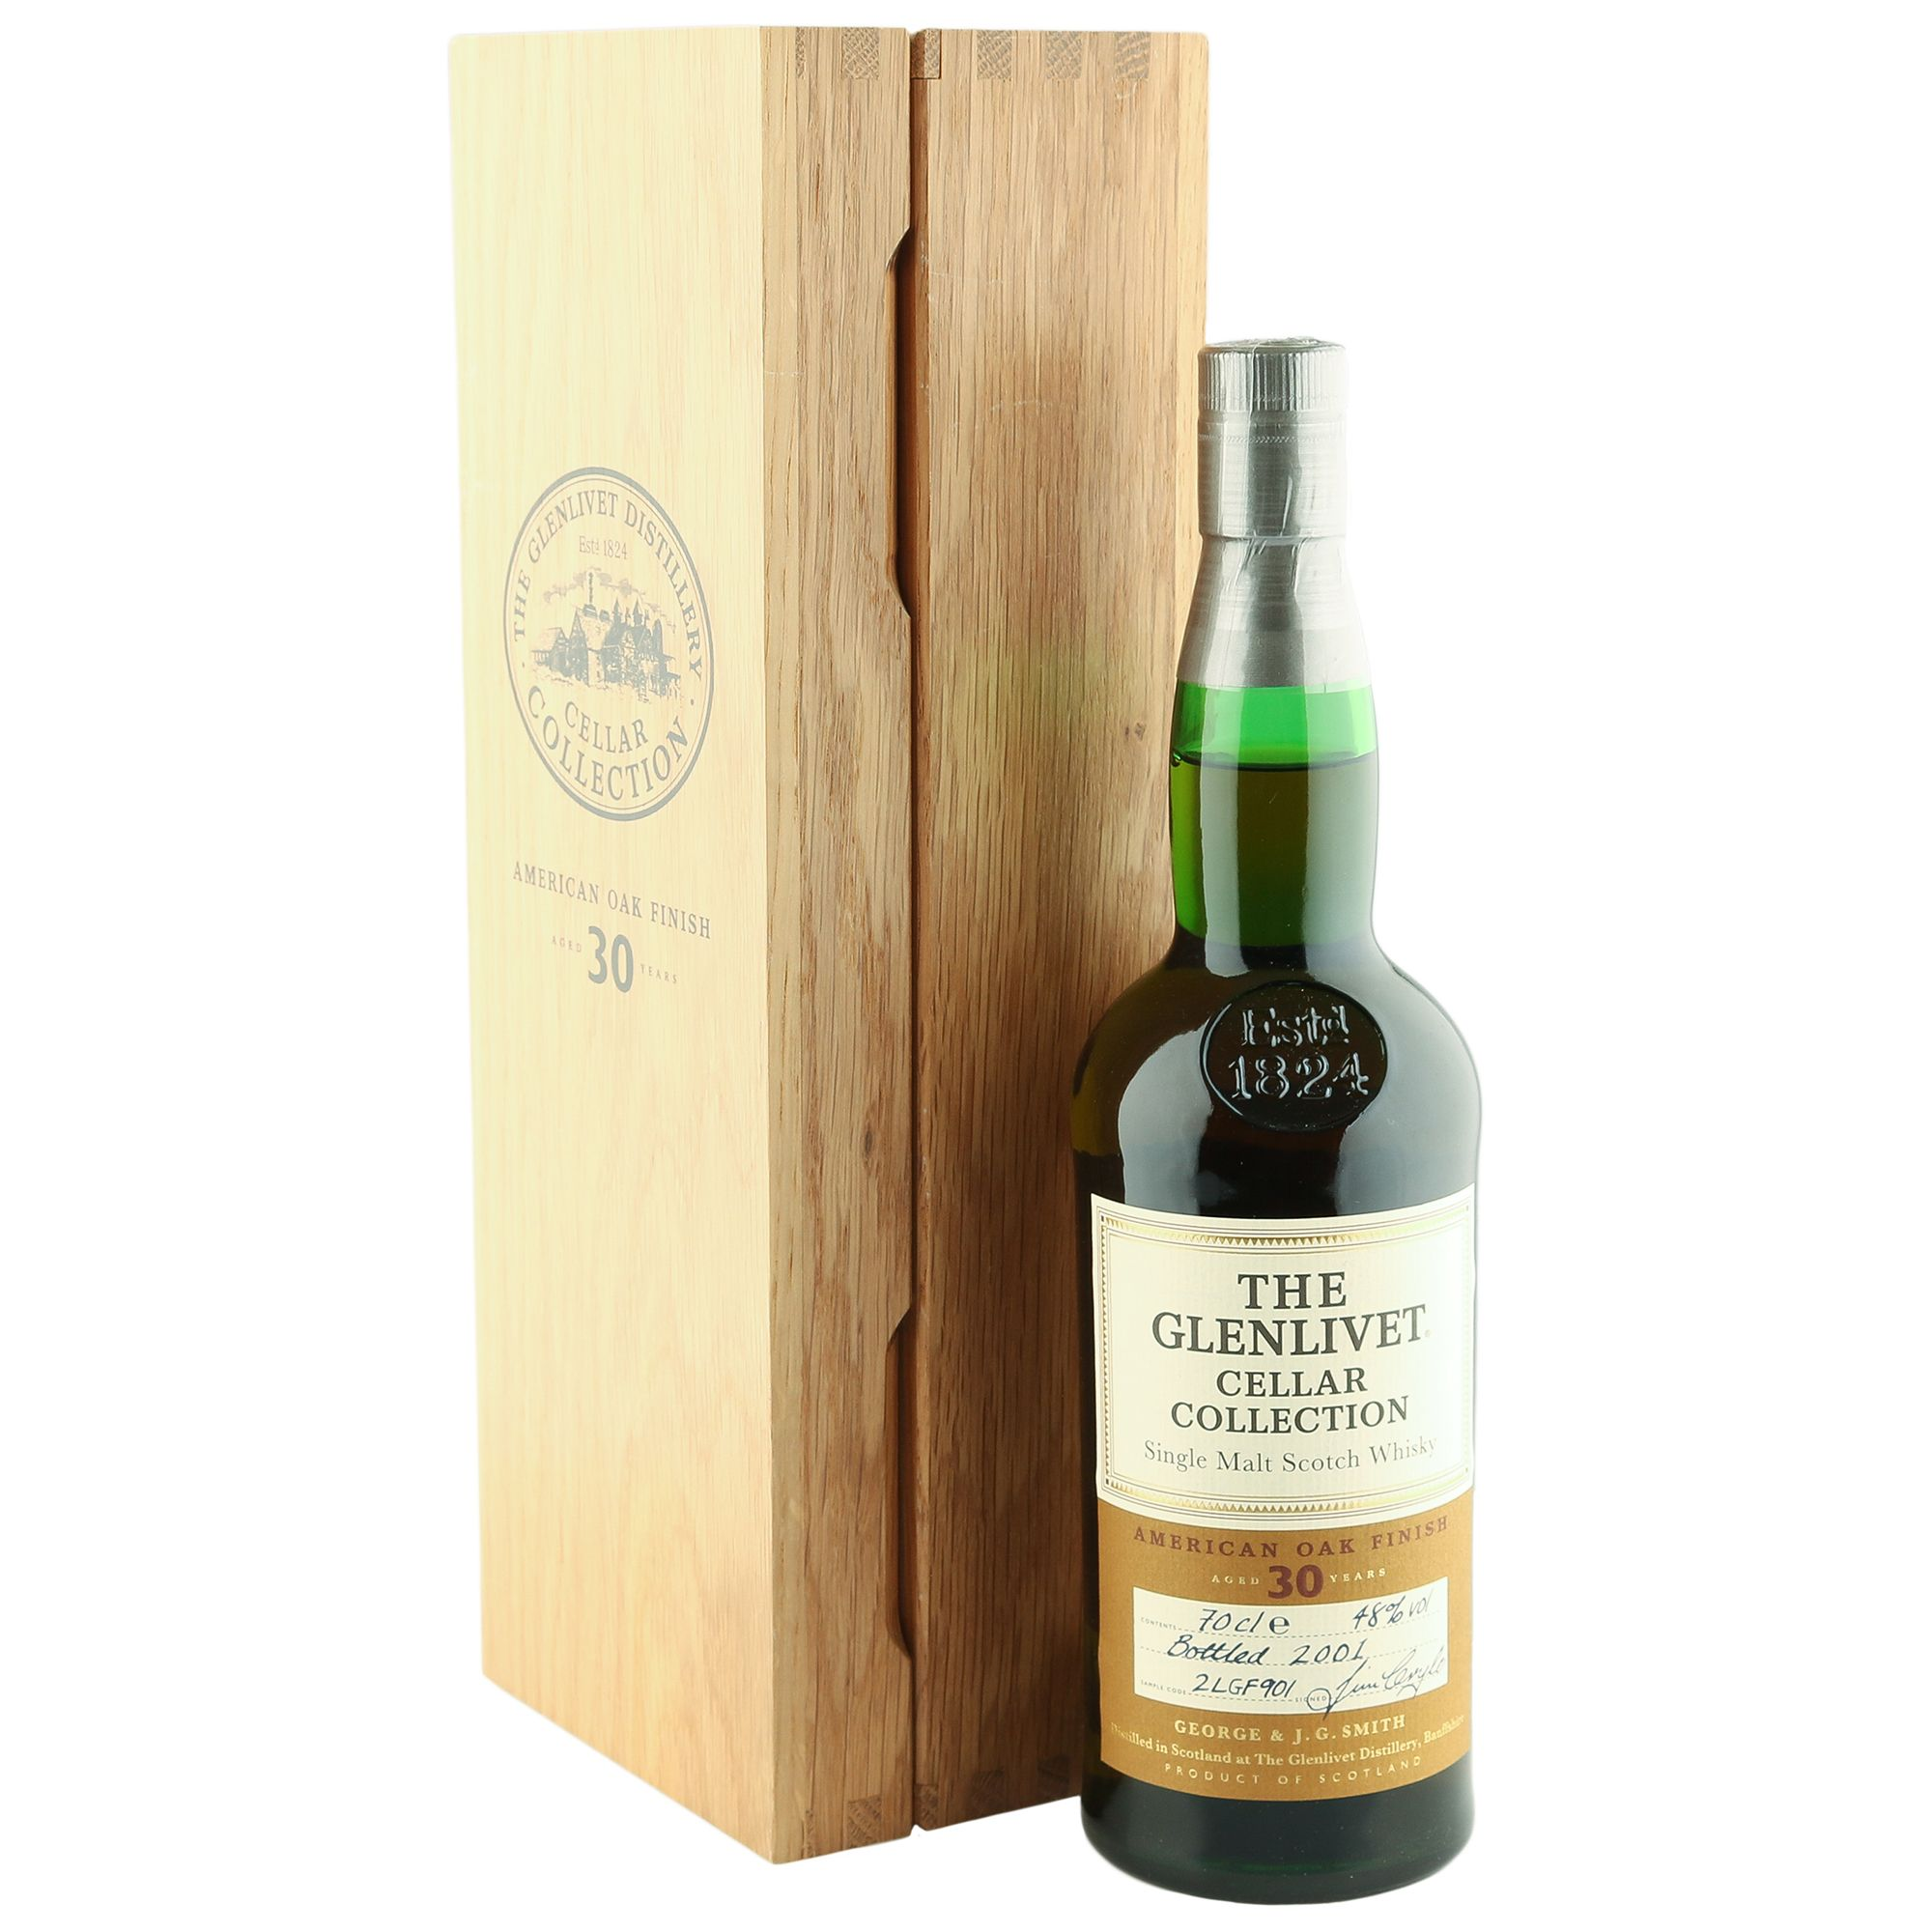 glenlivet 30 year old 2001 cellar collection the whisky vault